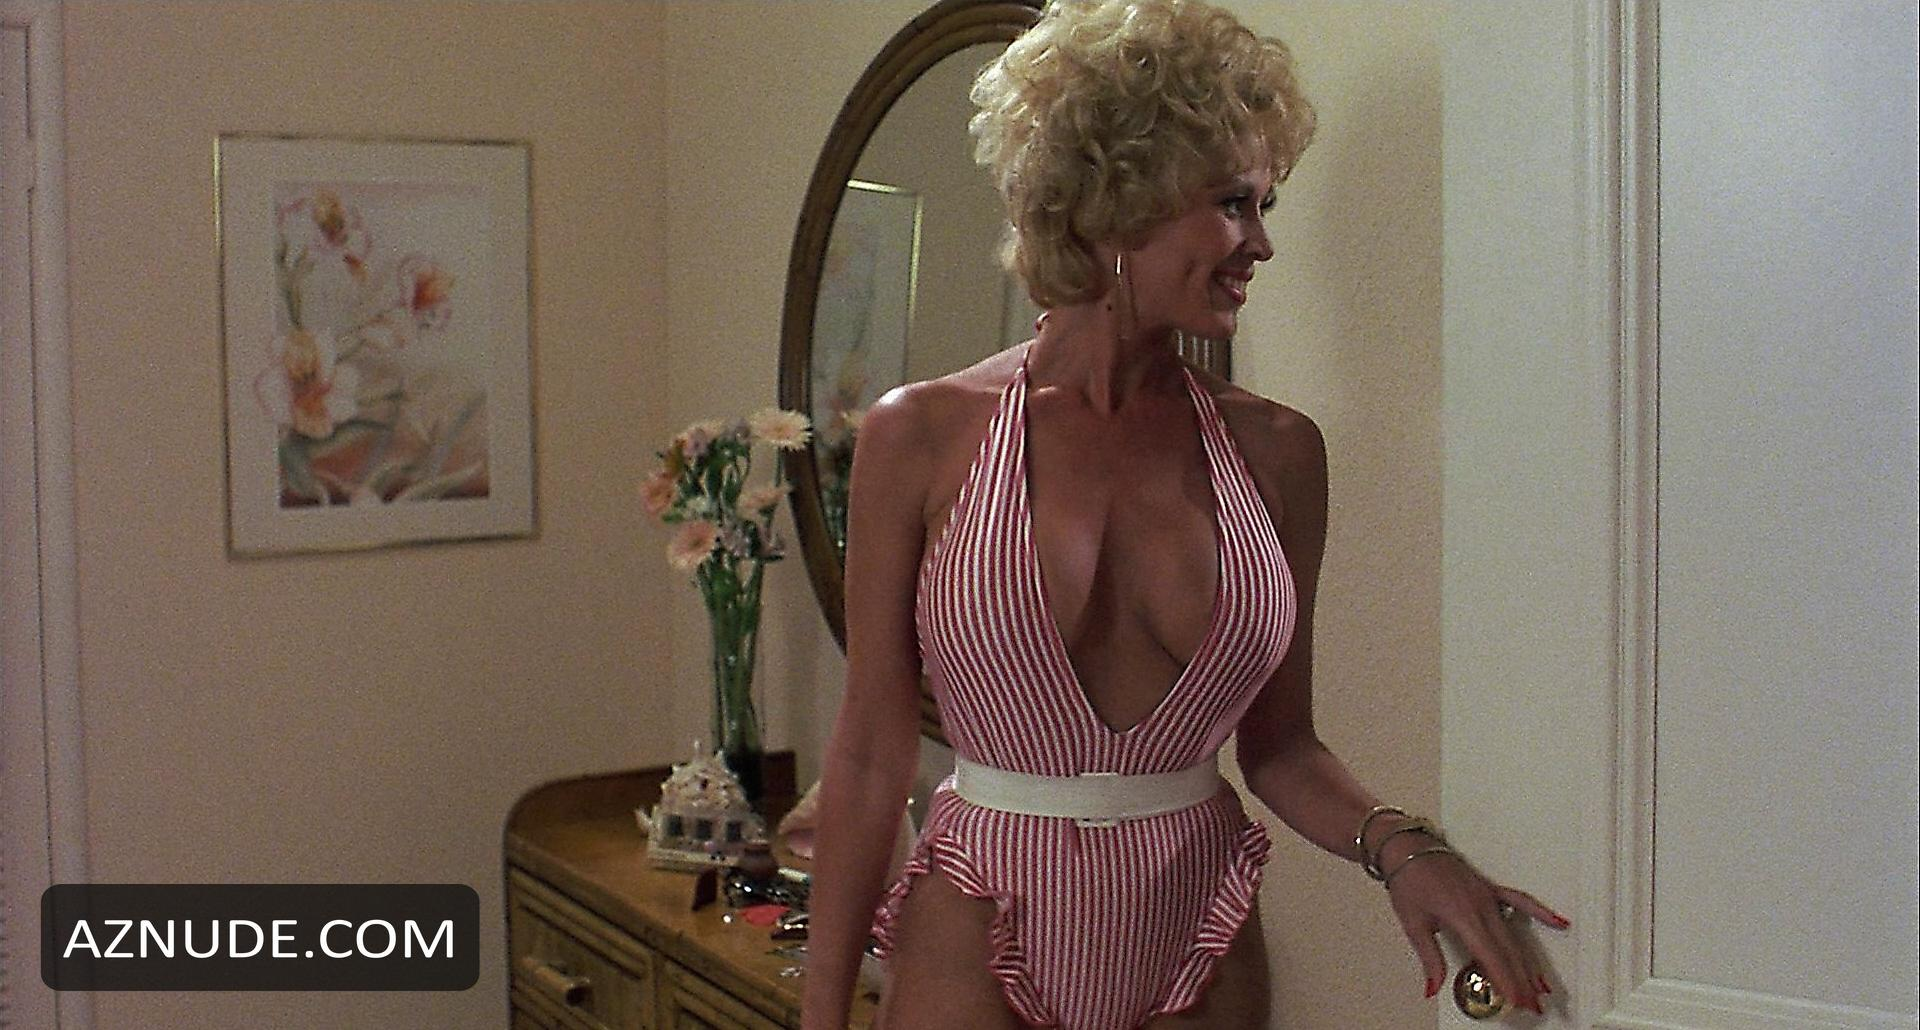 Commit error. Leslie easterbrook big tits nude right! seems